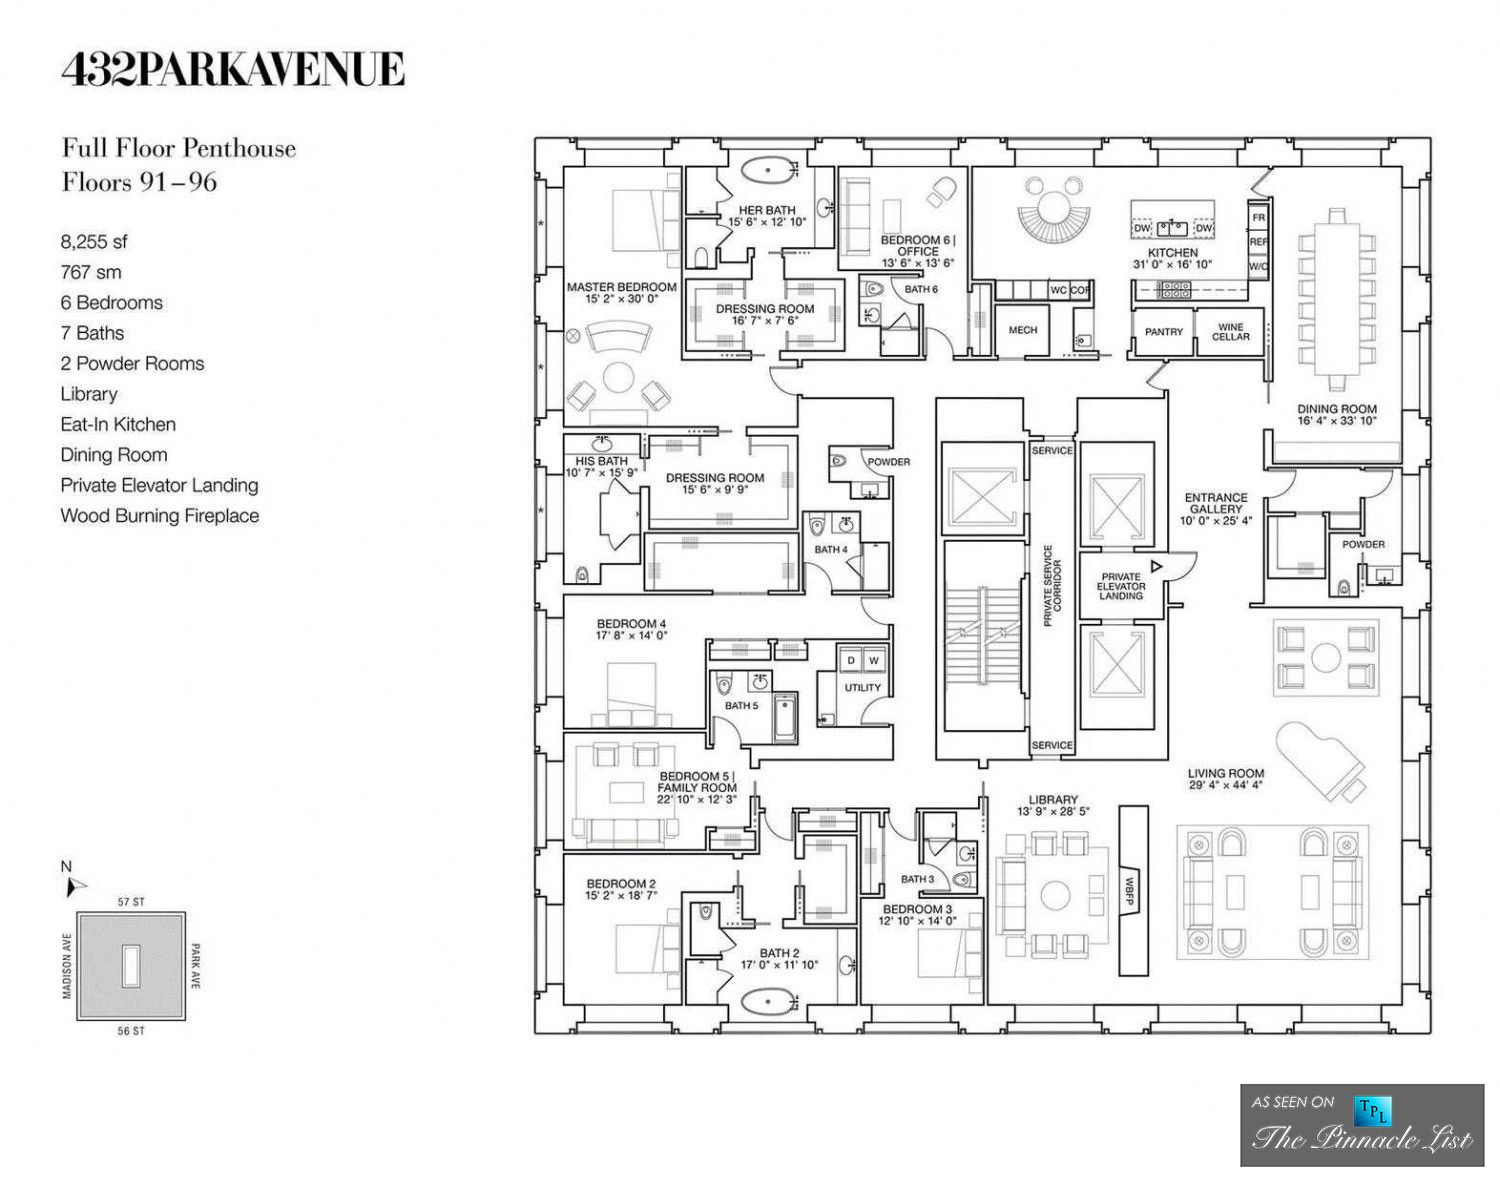 Luxury penthouse floor plan ph92 432 park avenue new for Floor plans manhattan apartment buildings